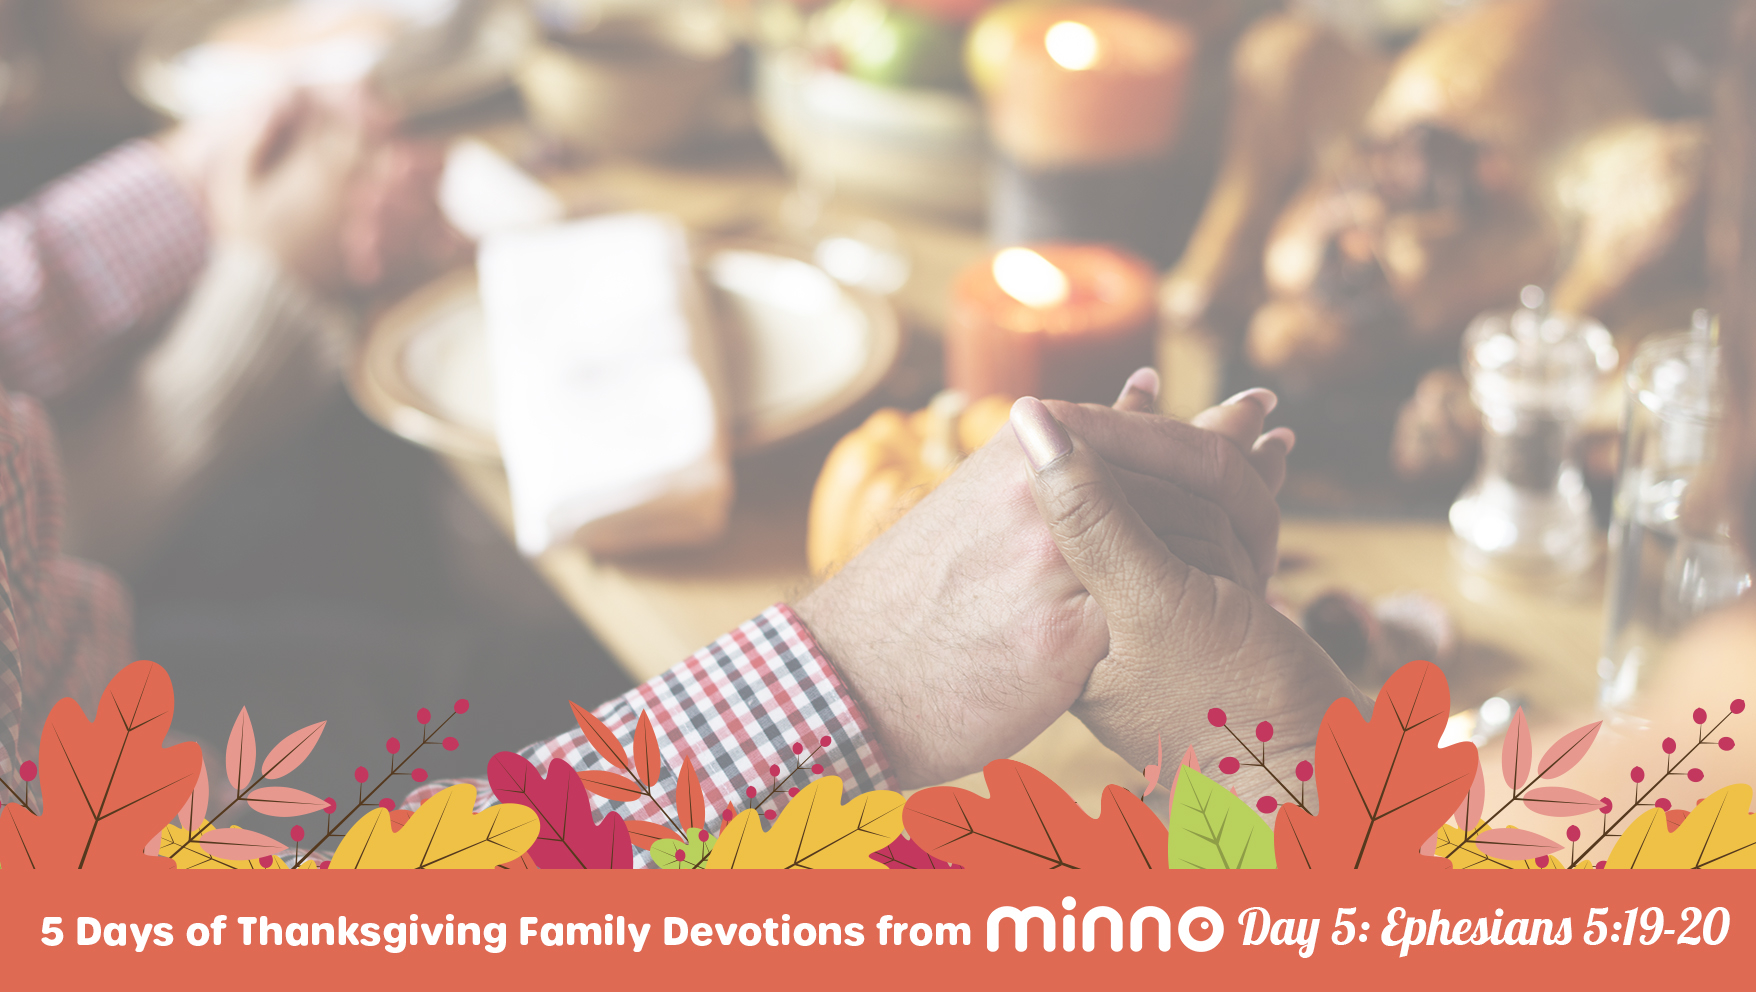 Thanksgiving Family Devotions - Day 5